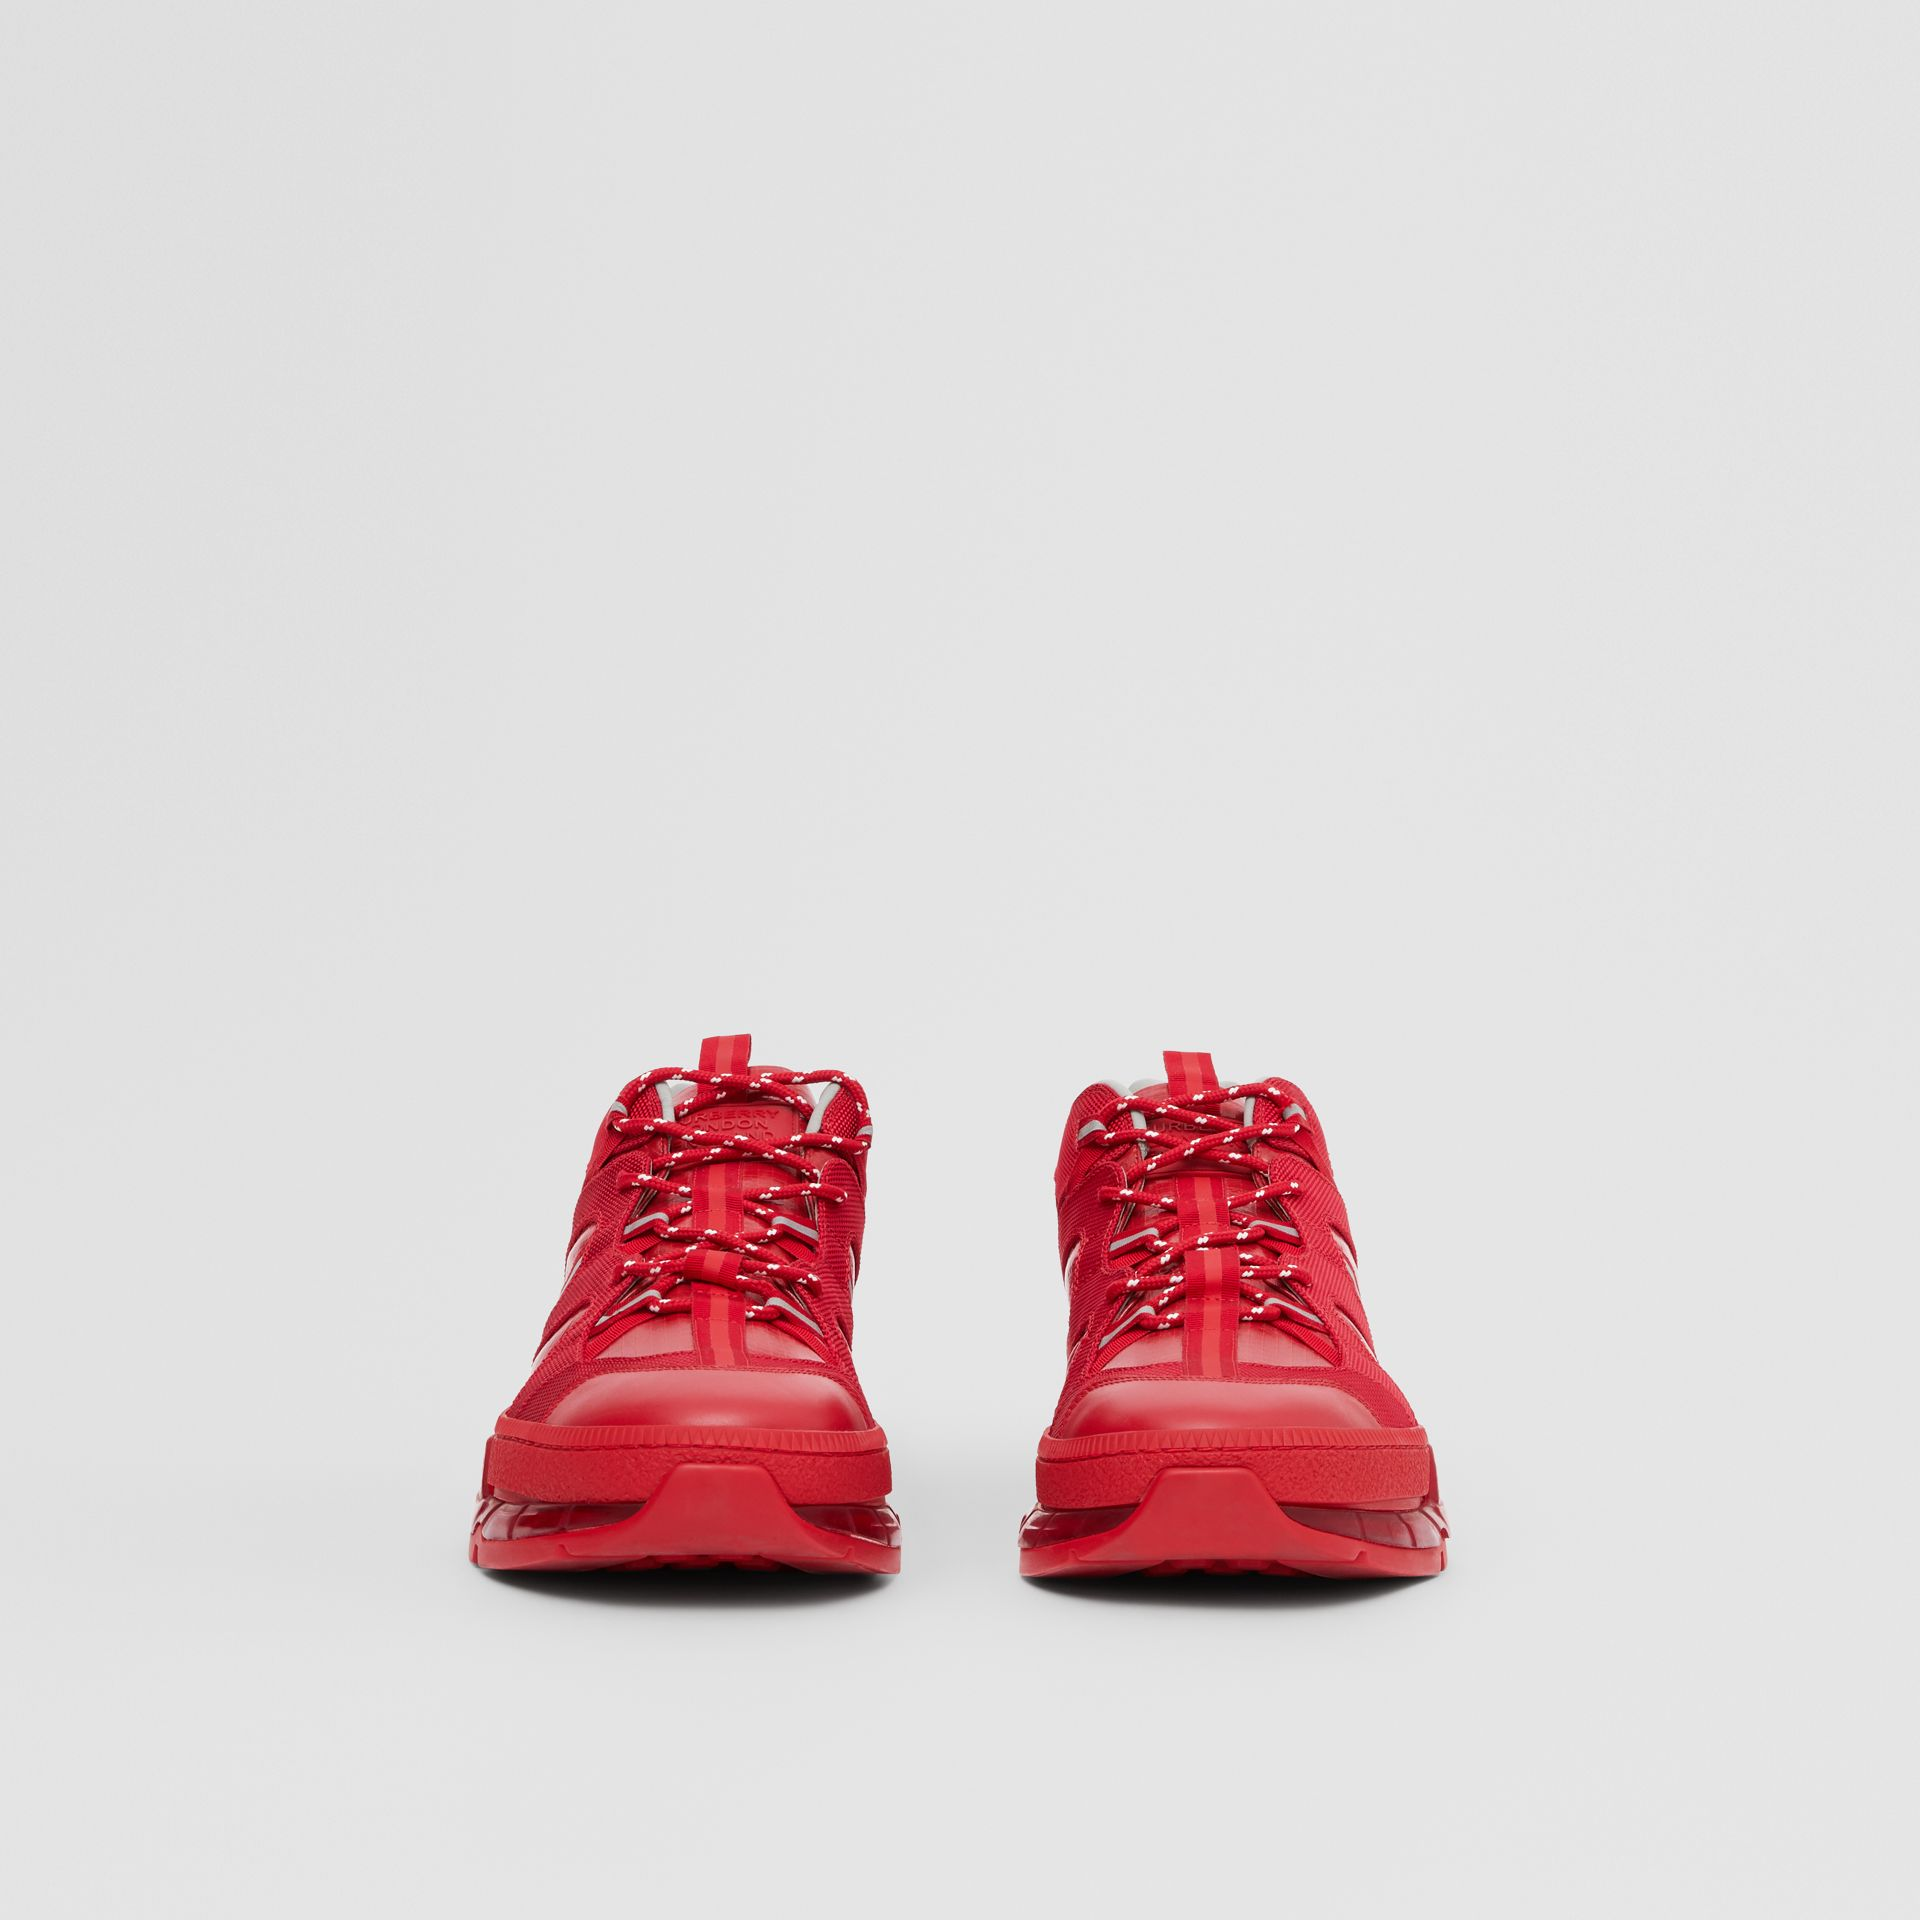 Nylon and Leather Union Sneakers in Bright Red - Women   Burberry - gallery image 1